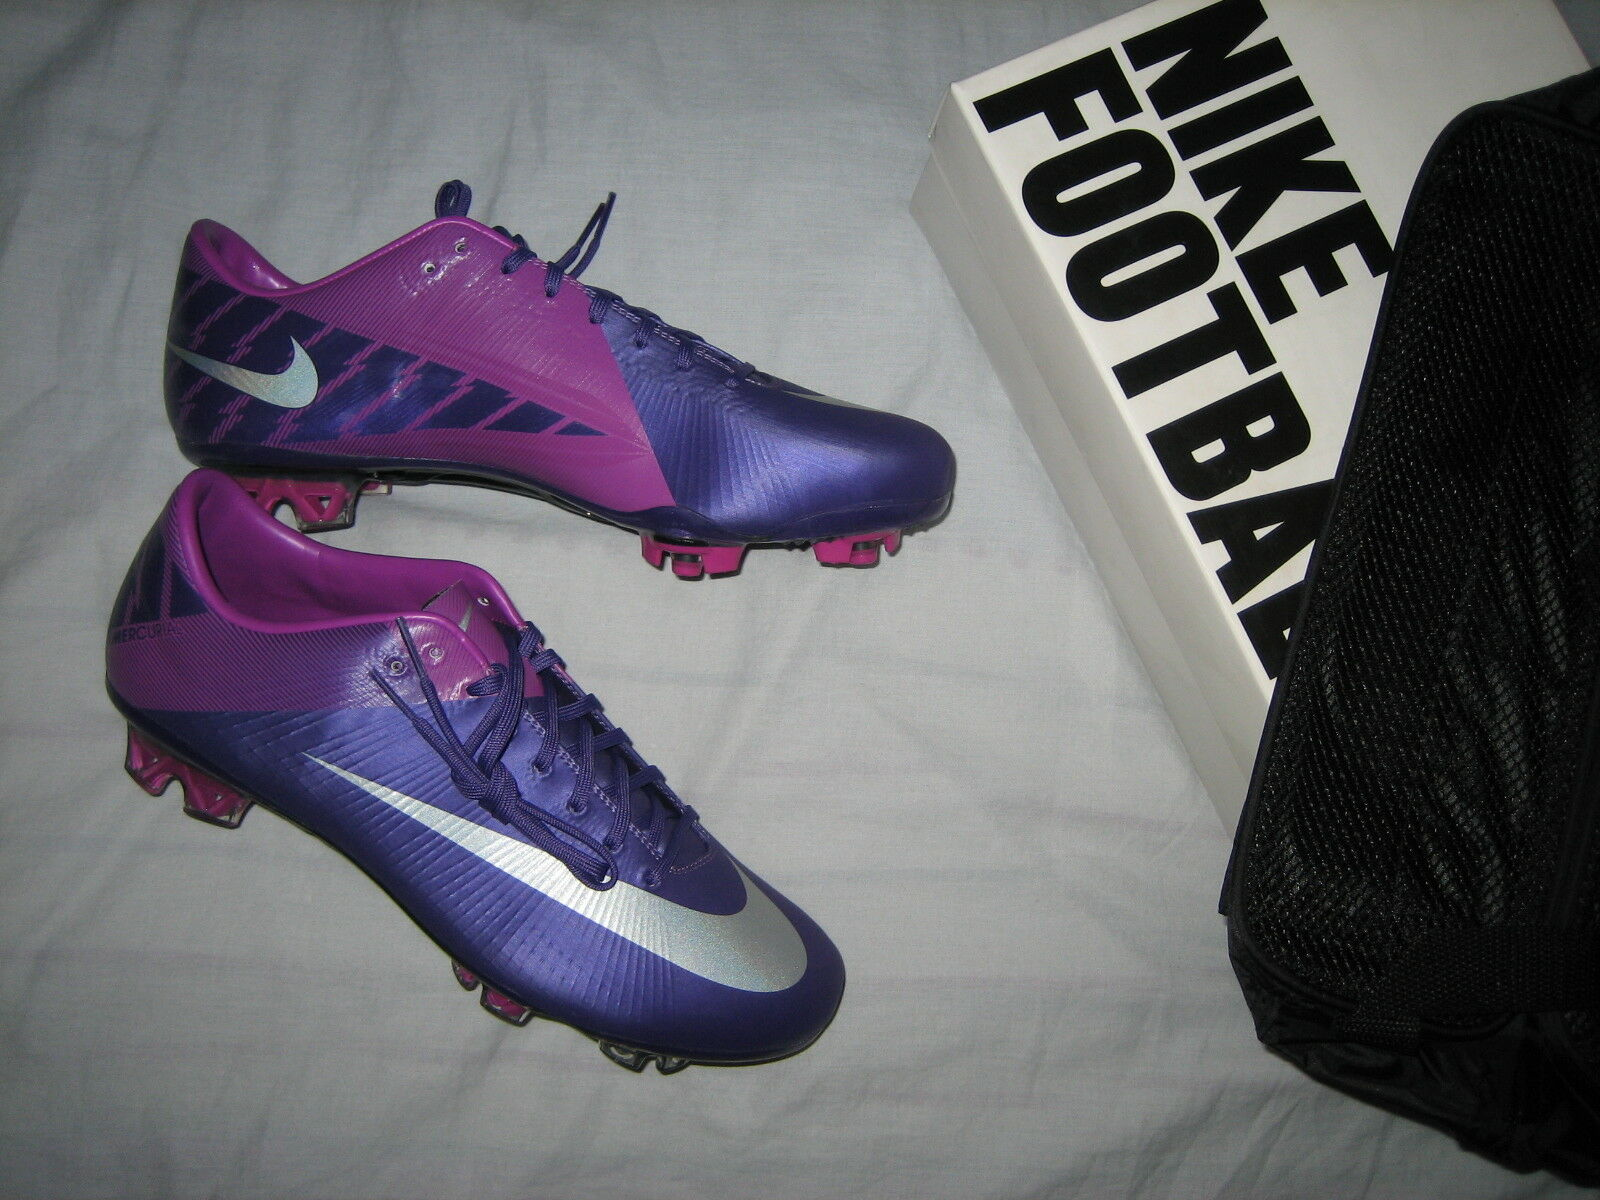 Nike mercurial vapor SUPERFLY III FG very rare football boots BRAND NEW